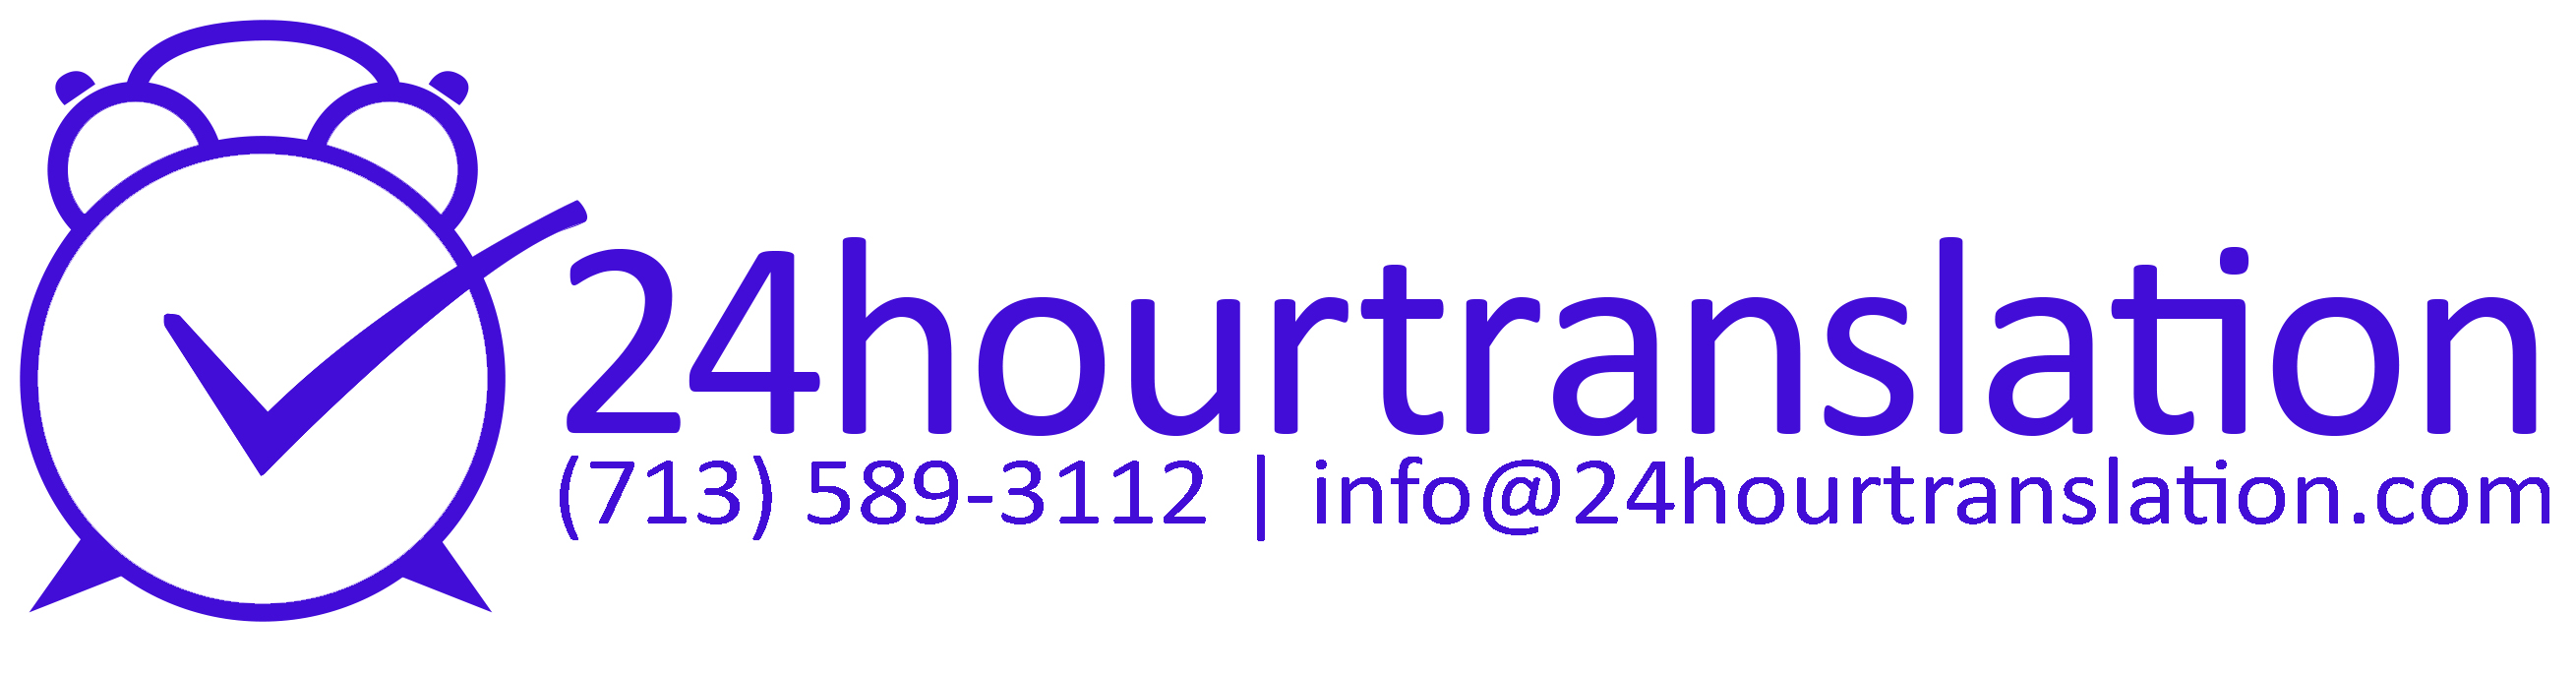 24 Hour Translation Services's Logo